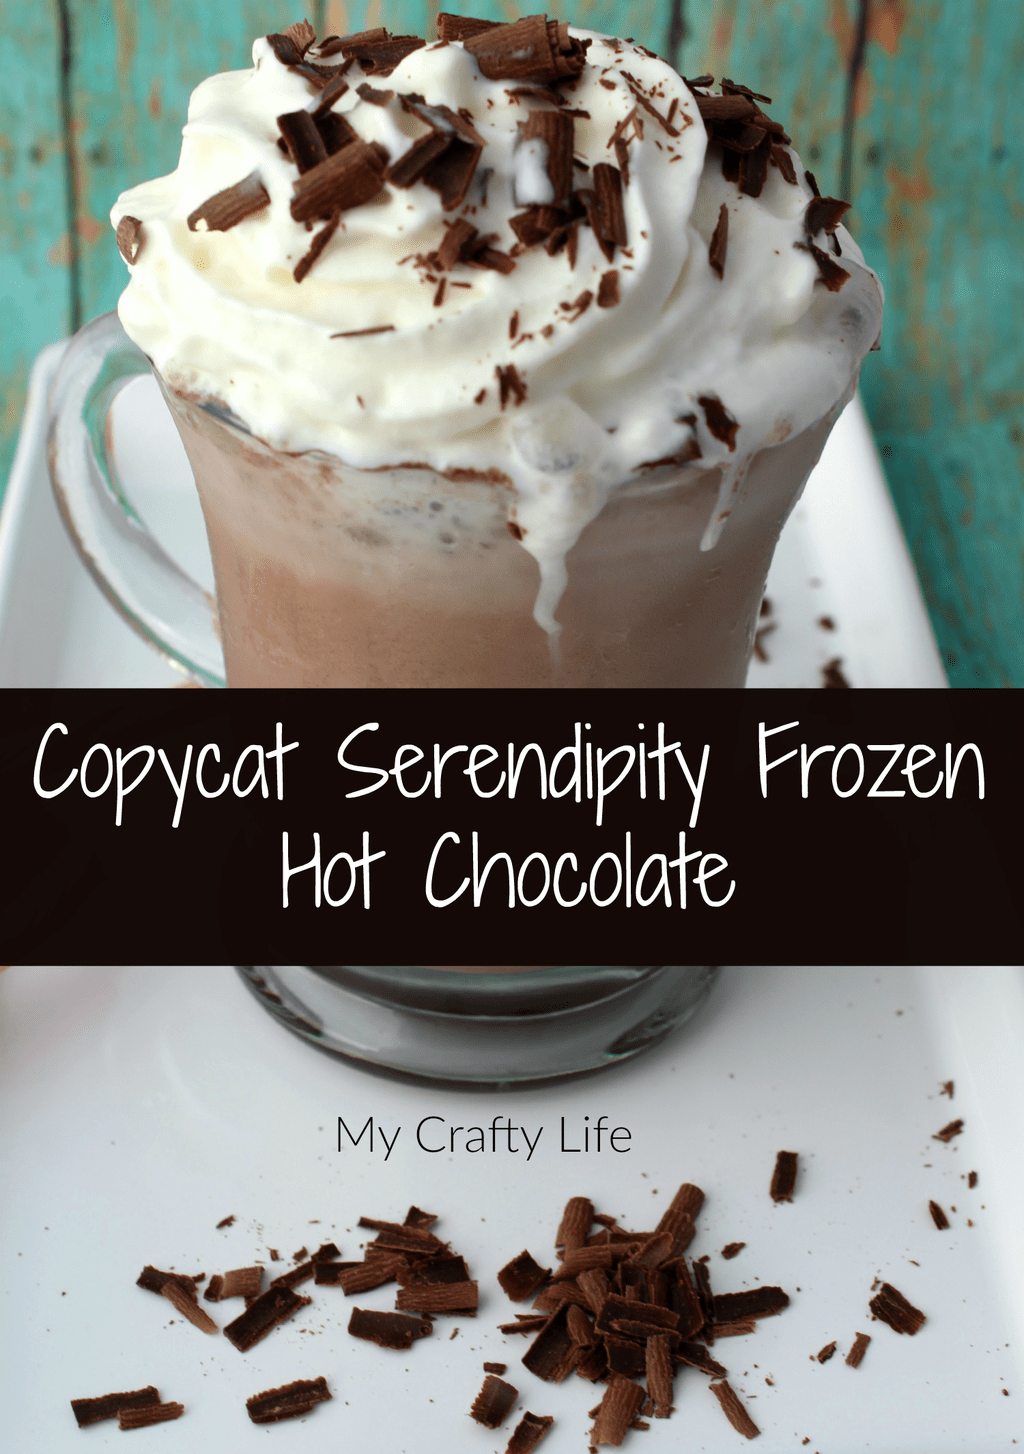 While this recipe is not exactly the famous Serendipity Frozen Hot Chocolate, it's pretty dang close. Enjoy!